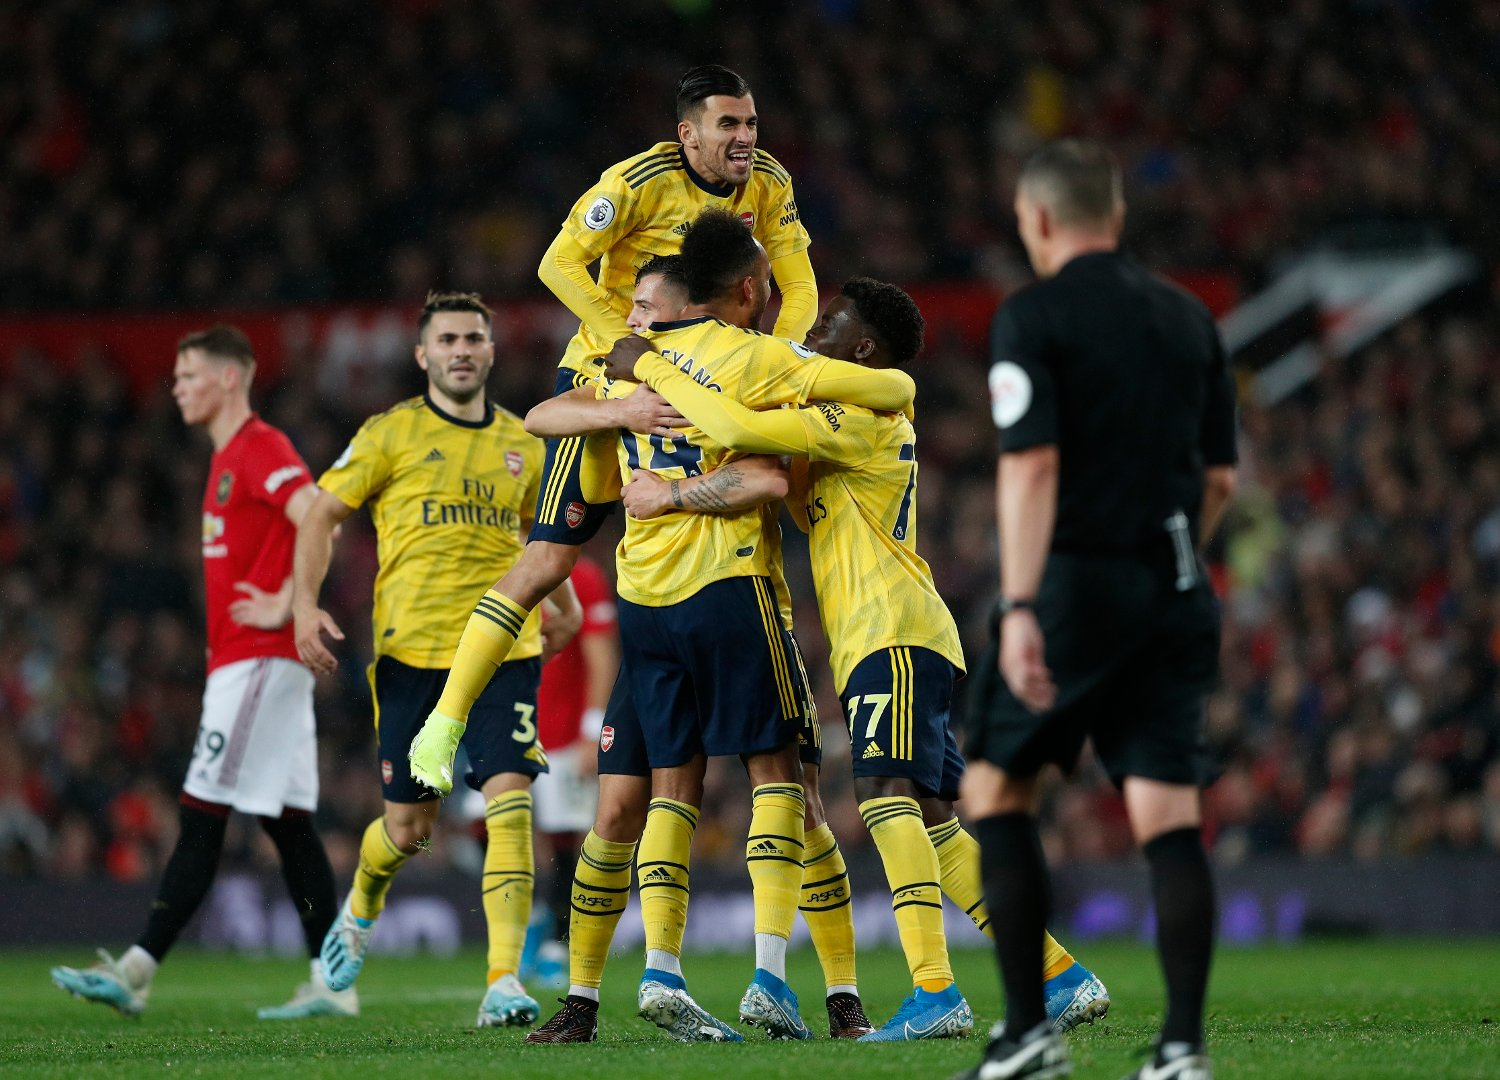 Pierre-Emerick Aubameyang of Arsenal celebrates scoring the equalising goal during the Premier League match at Old Trafford, Manchester. Picture date: 30th September 2019. Picture credit should read: Darren Staples/Sportimage via PA Images